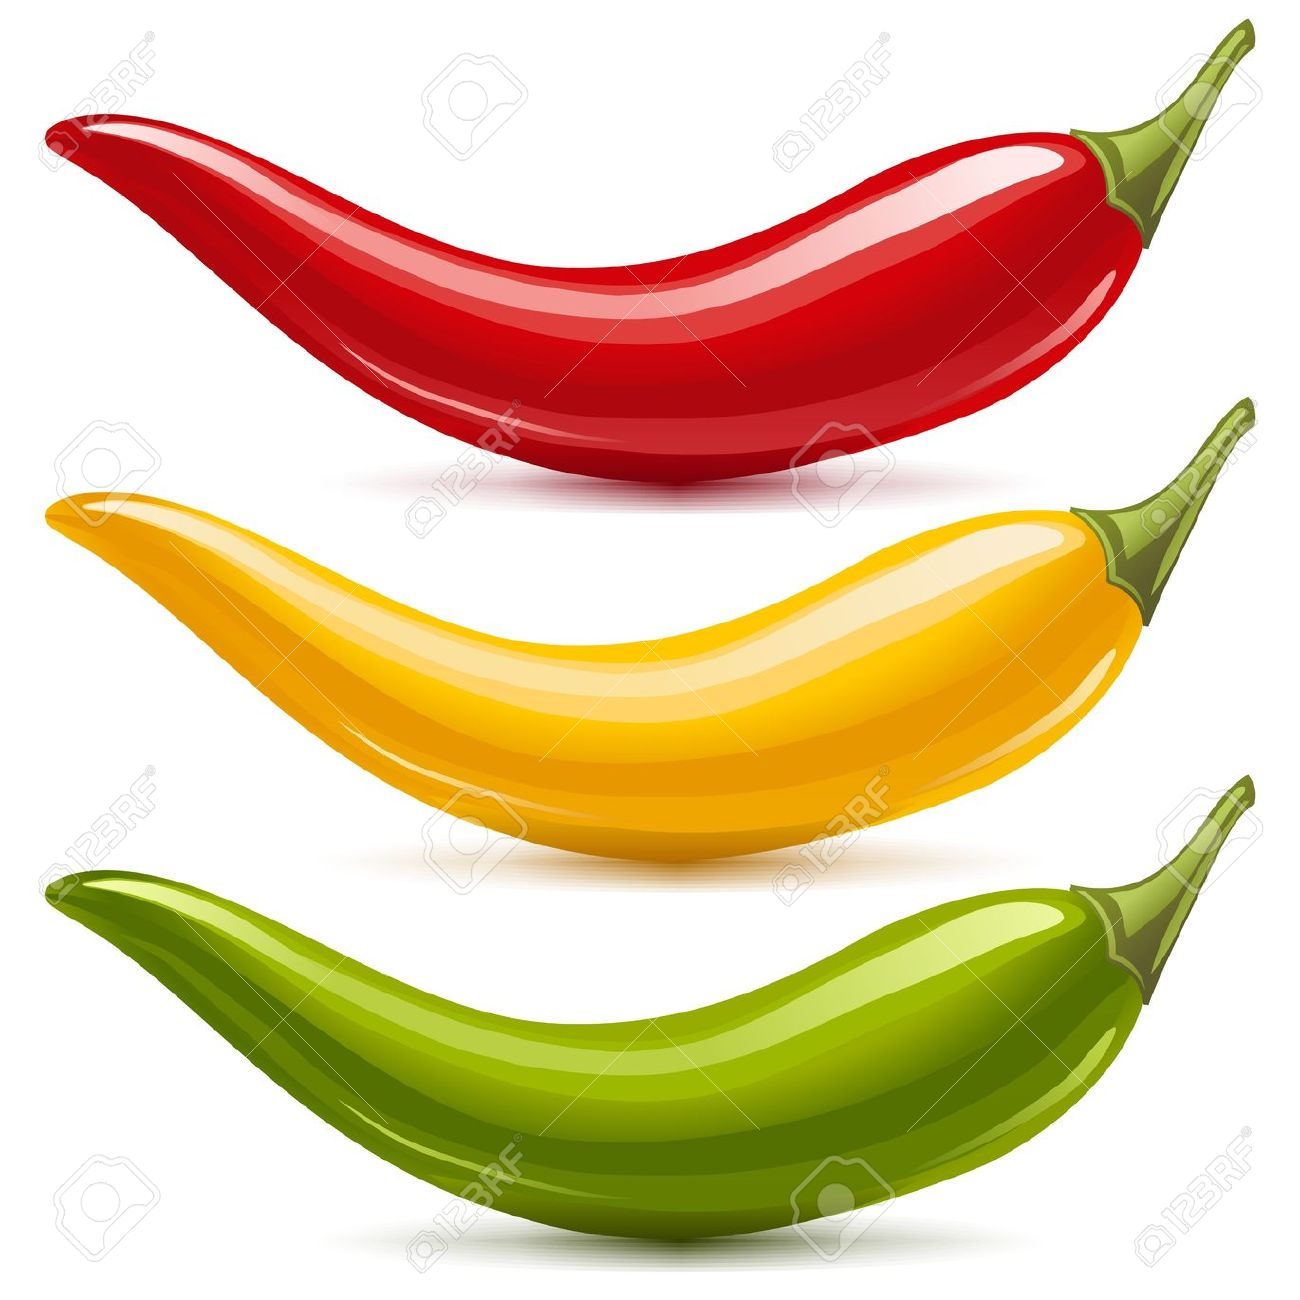 Free chili peppers green yellow red clipart.